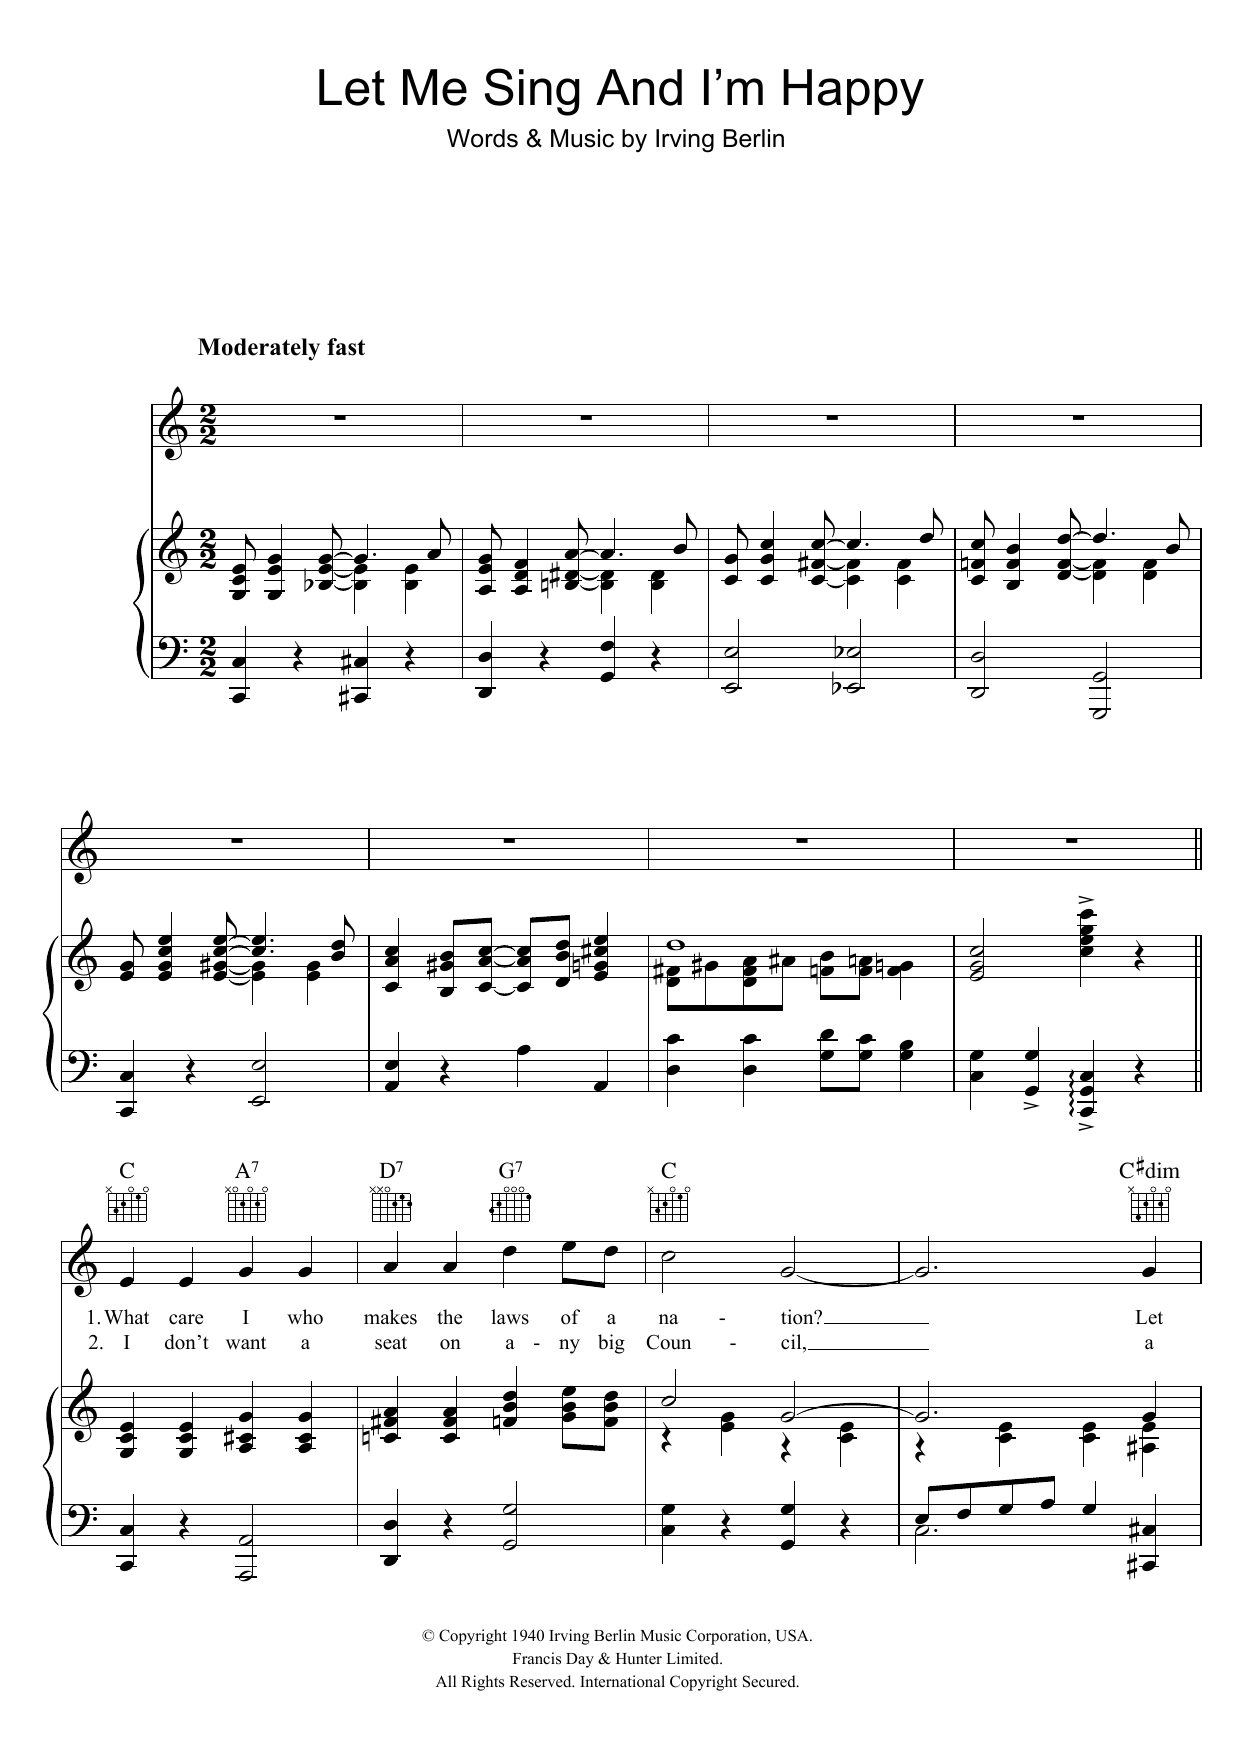 Let Me Sing And I'm Happy (Piano, Vocal & Guitar)